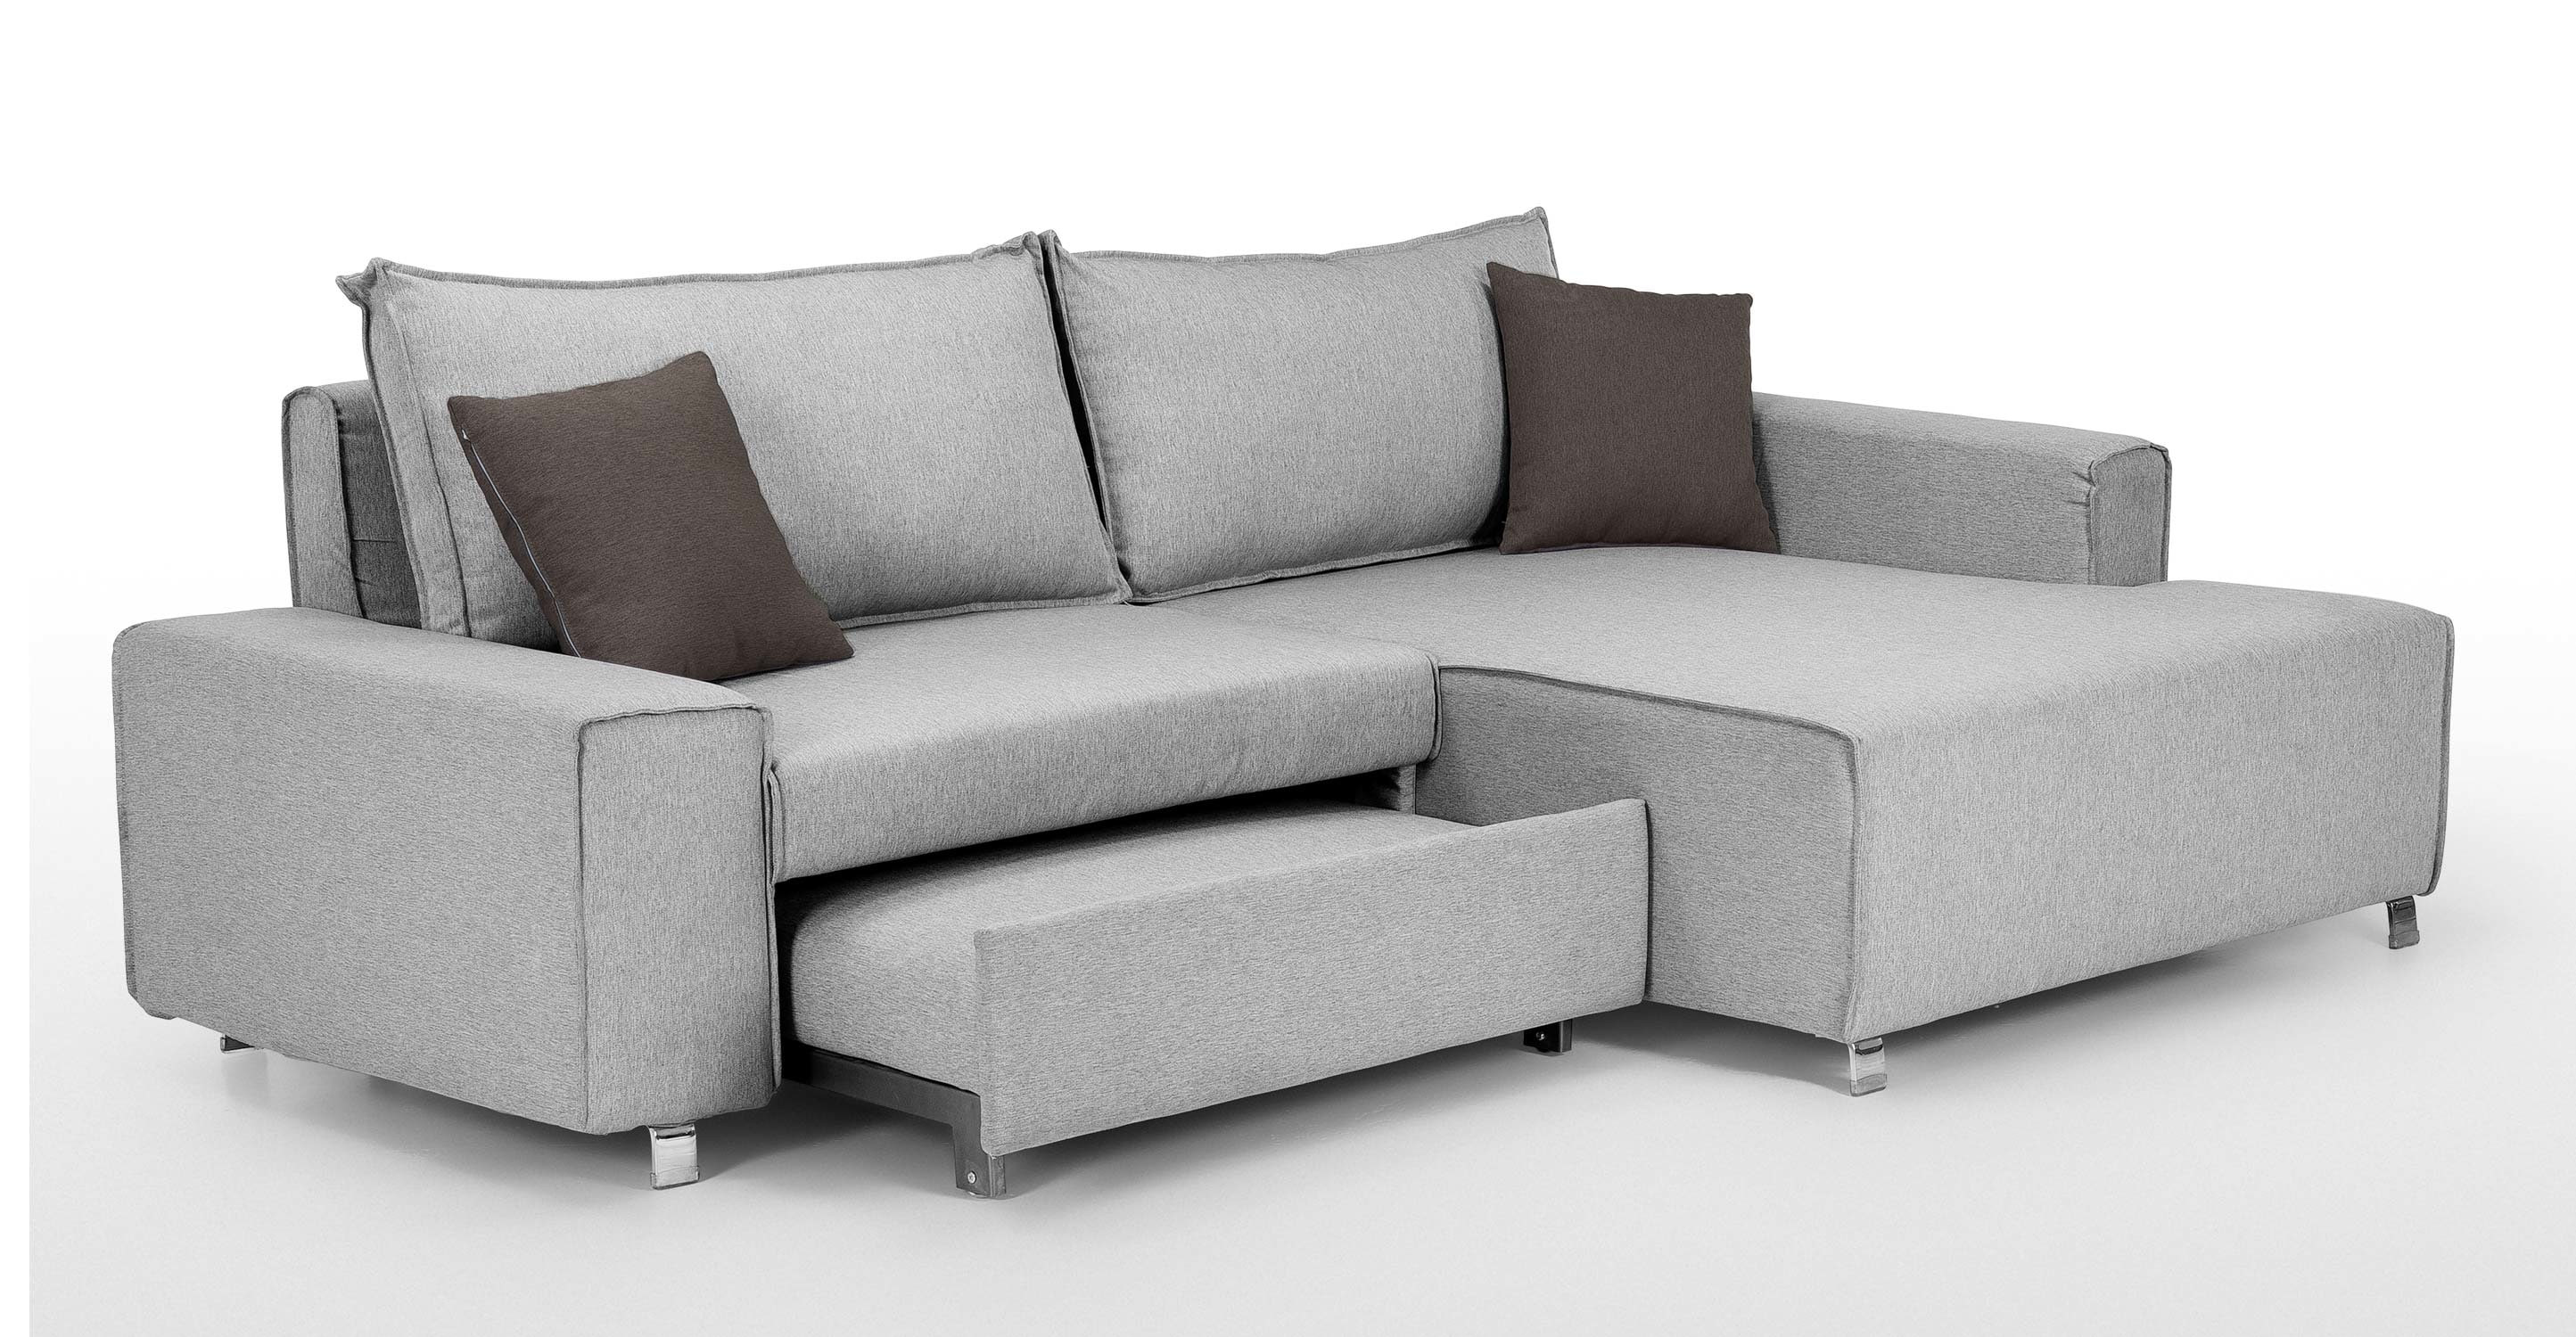 Best ideas about Corner Sofa Bed . Save or Pin Mayne Right Hand Facing Corner Sofa Bed Clear Grey Stone Now.